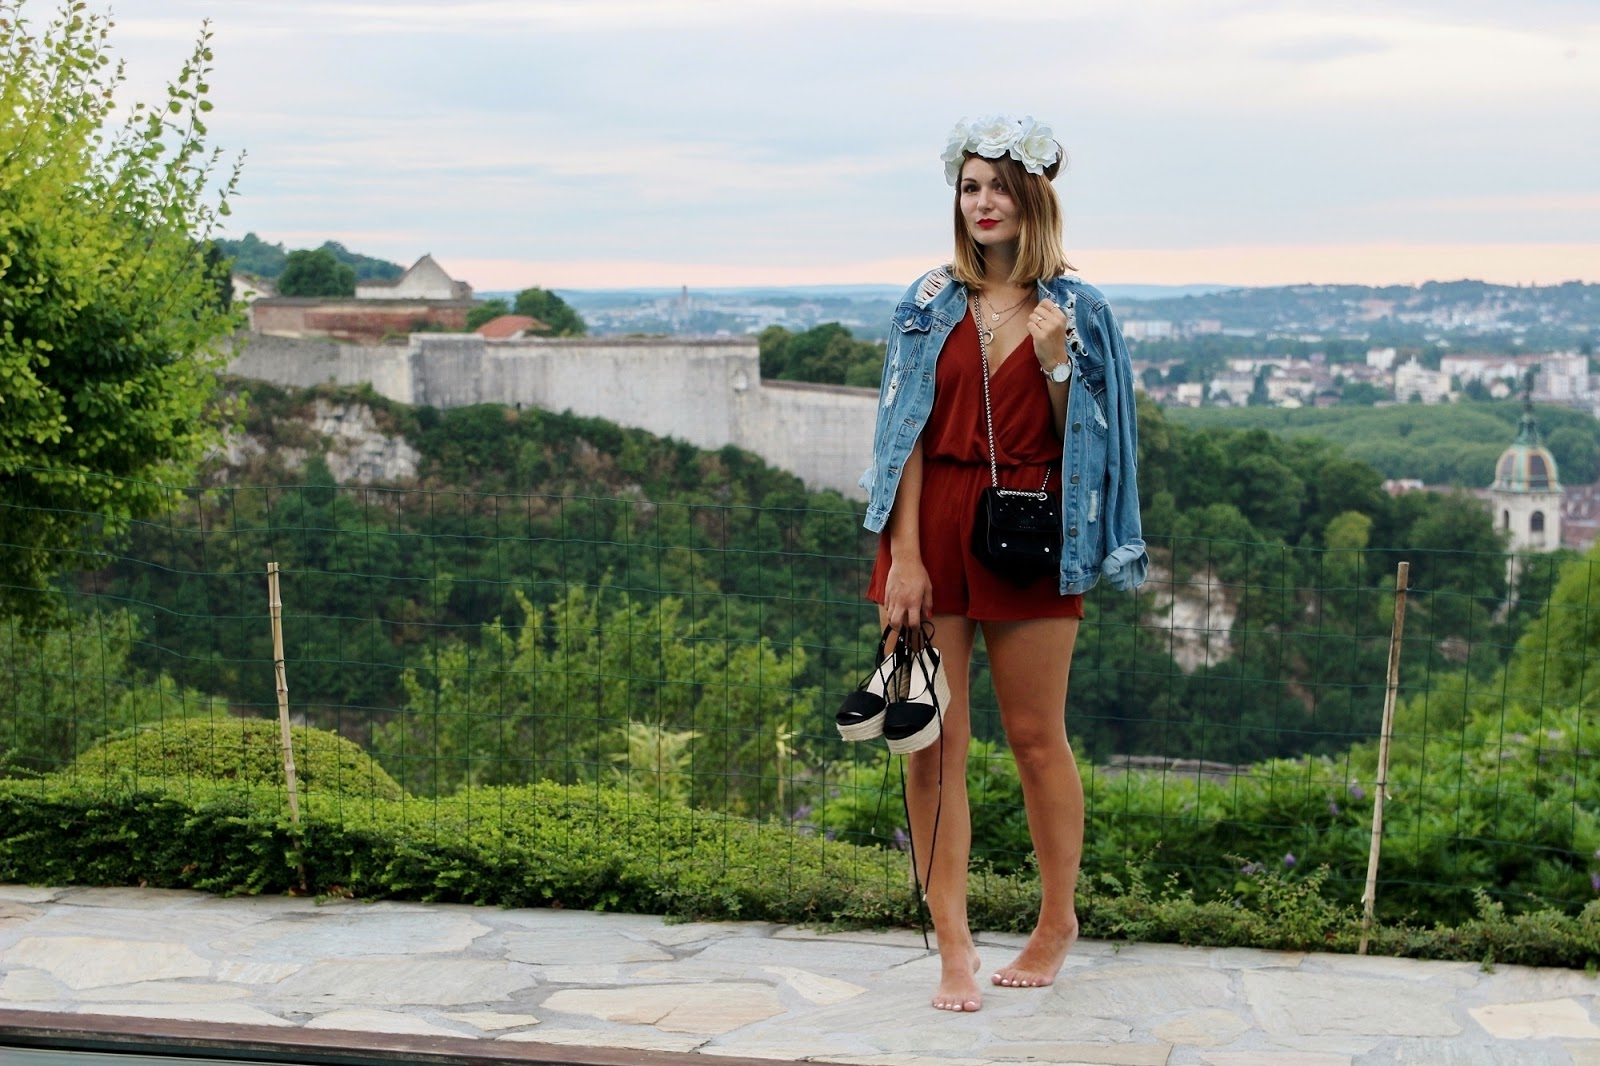 retrospective-mode-pauline-dress-blog-mode-deco-lifestyle-besancon-doubs-franche-comte-fille-blogueuse-look-tenue-tendance-fashion-2017